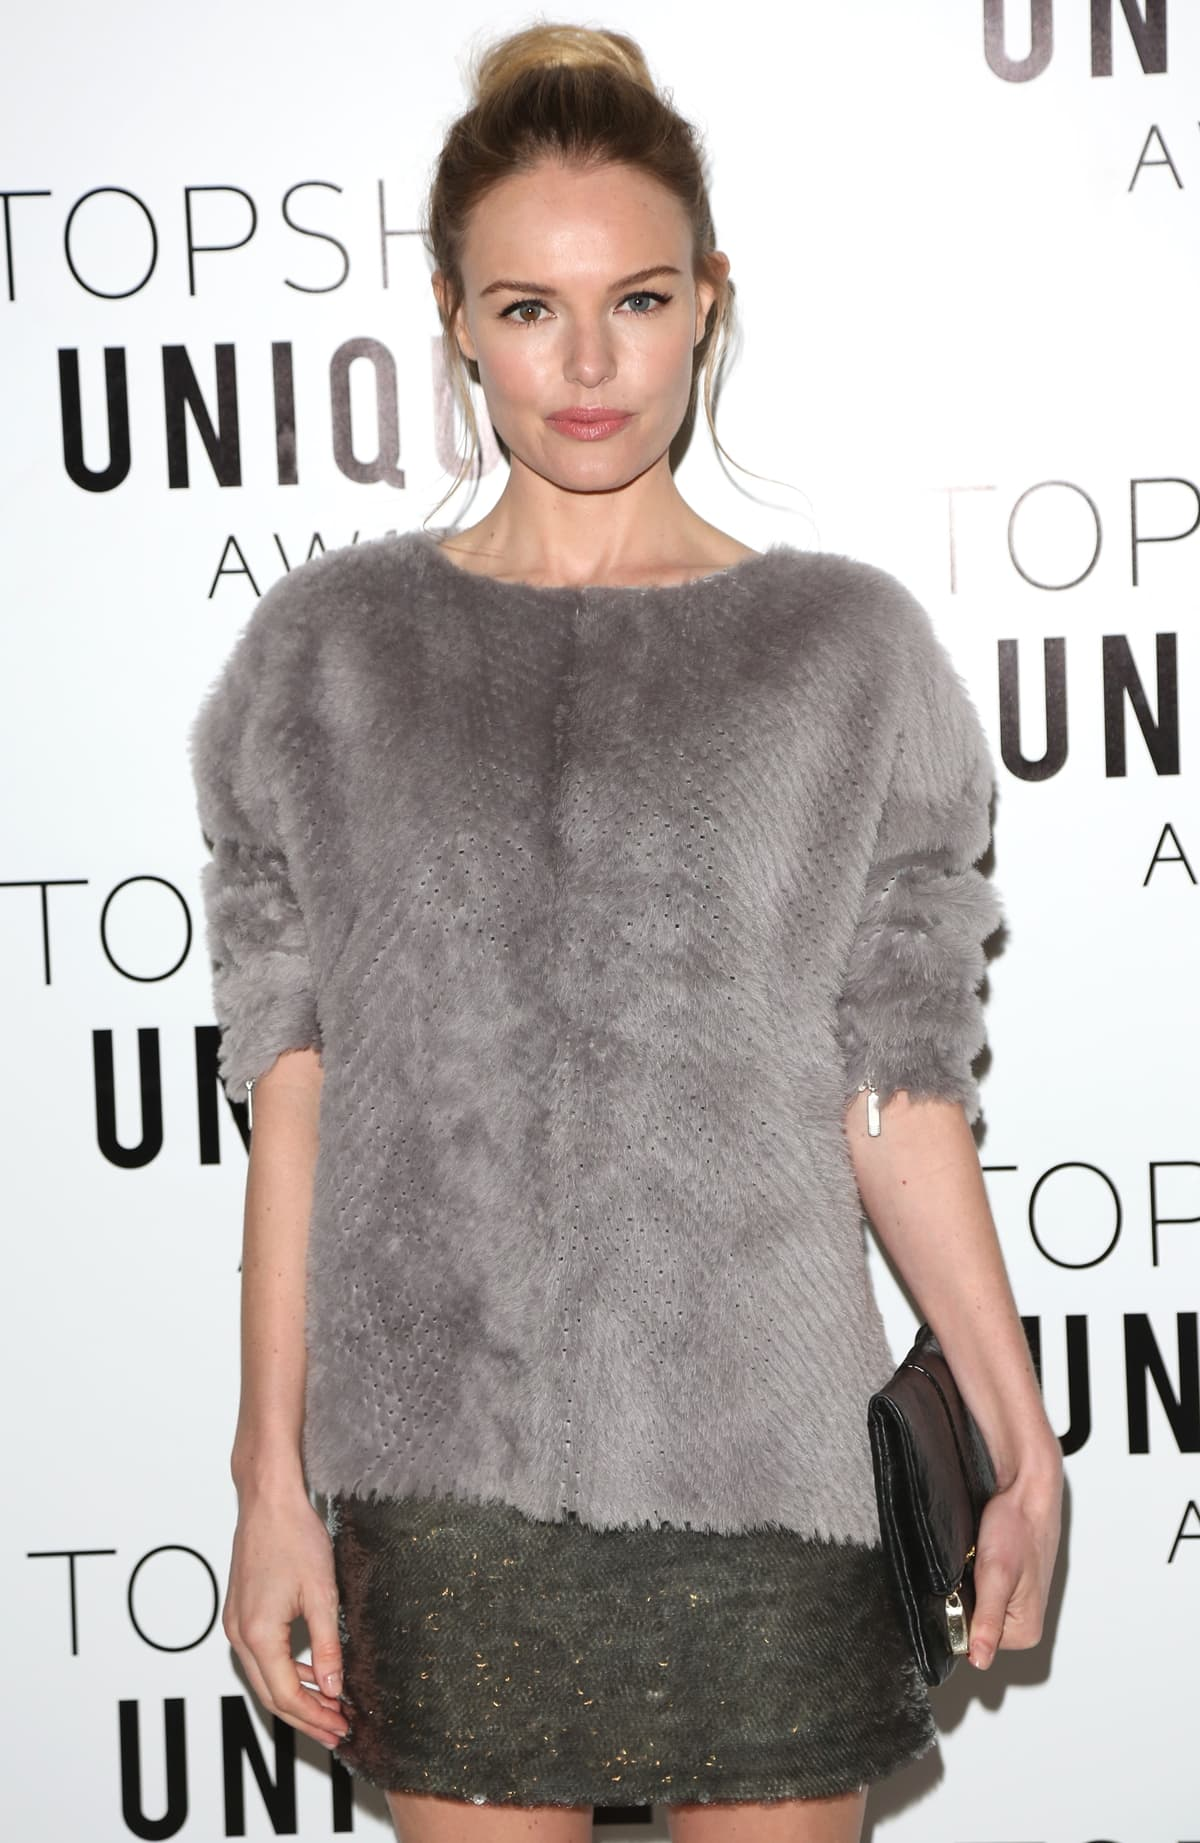 Kate Bosworth wears a sparkly mini skirt with a nice, warm sweater